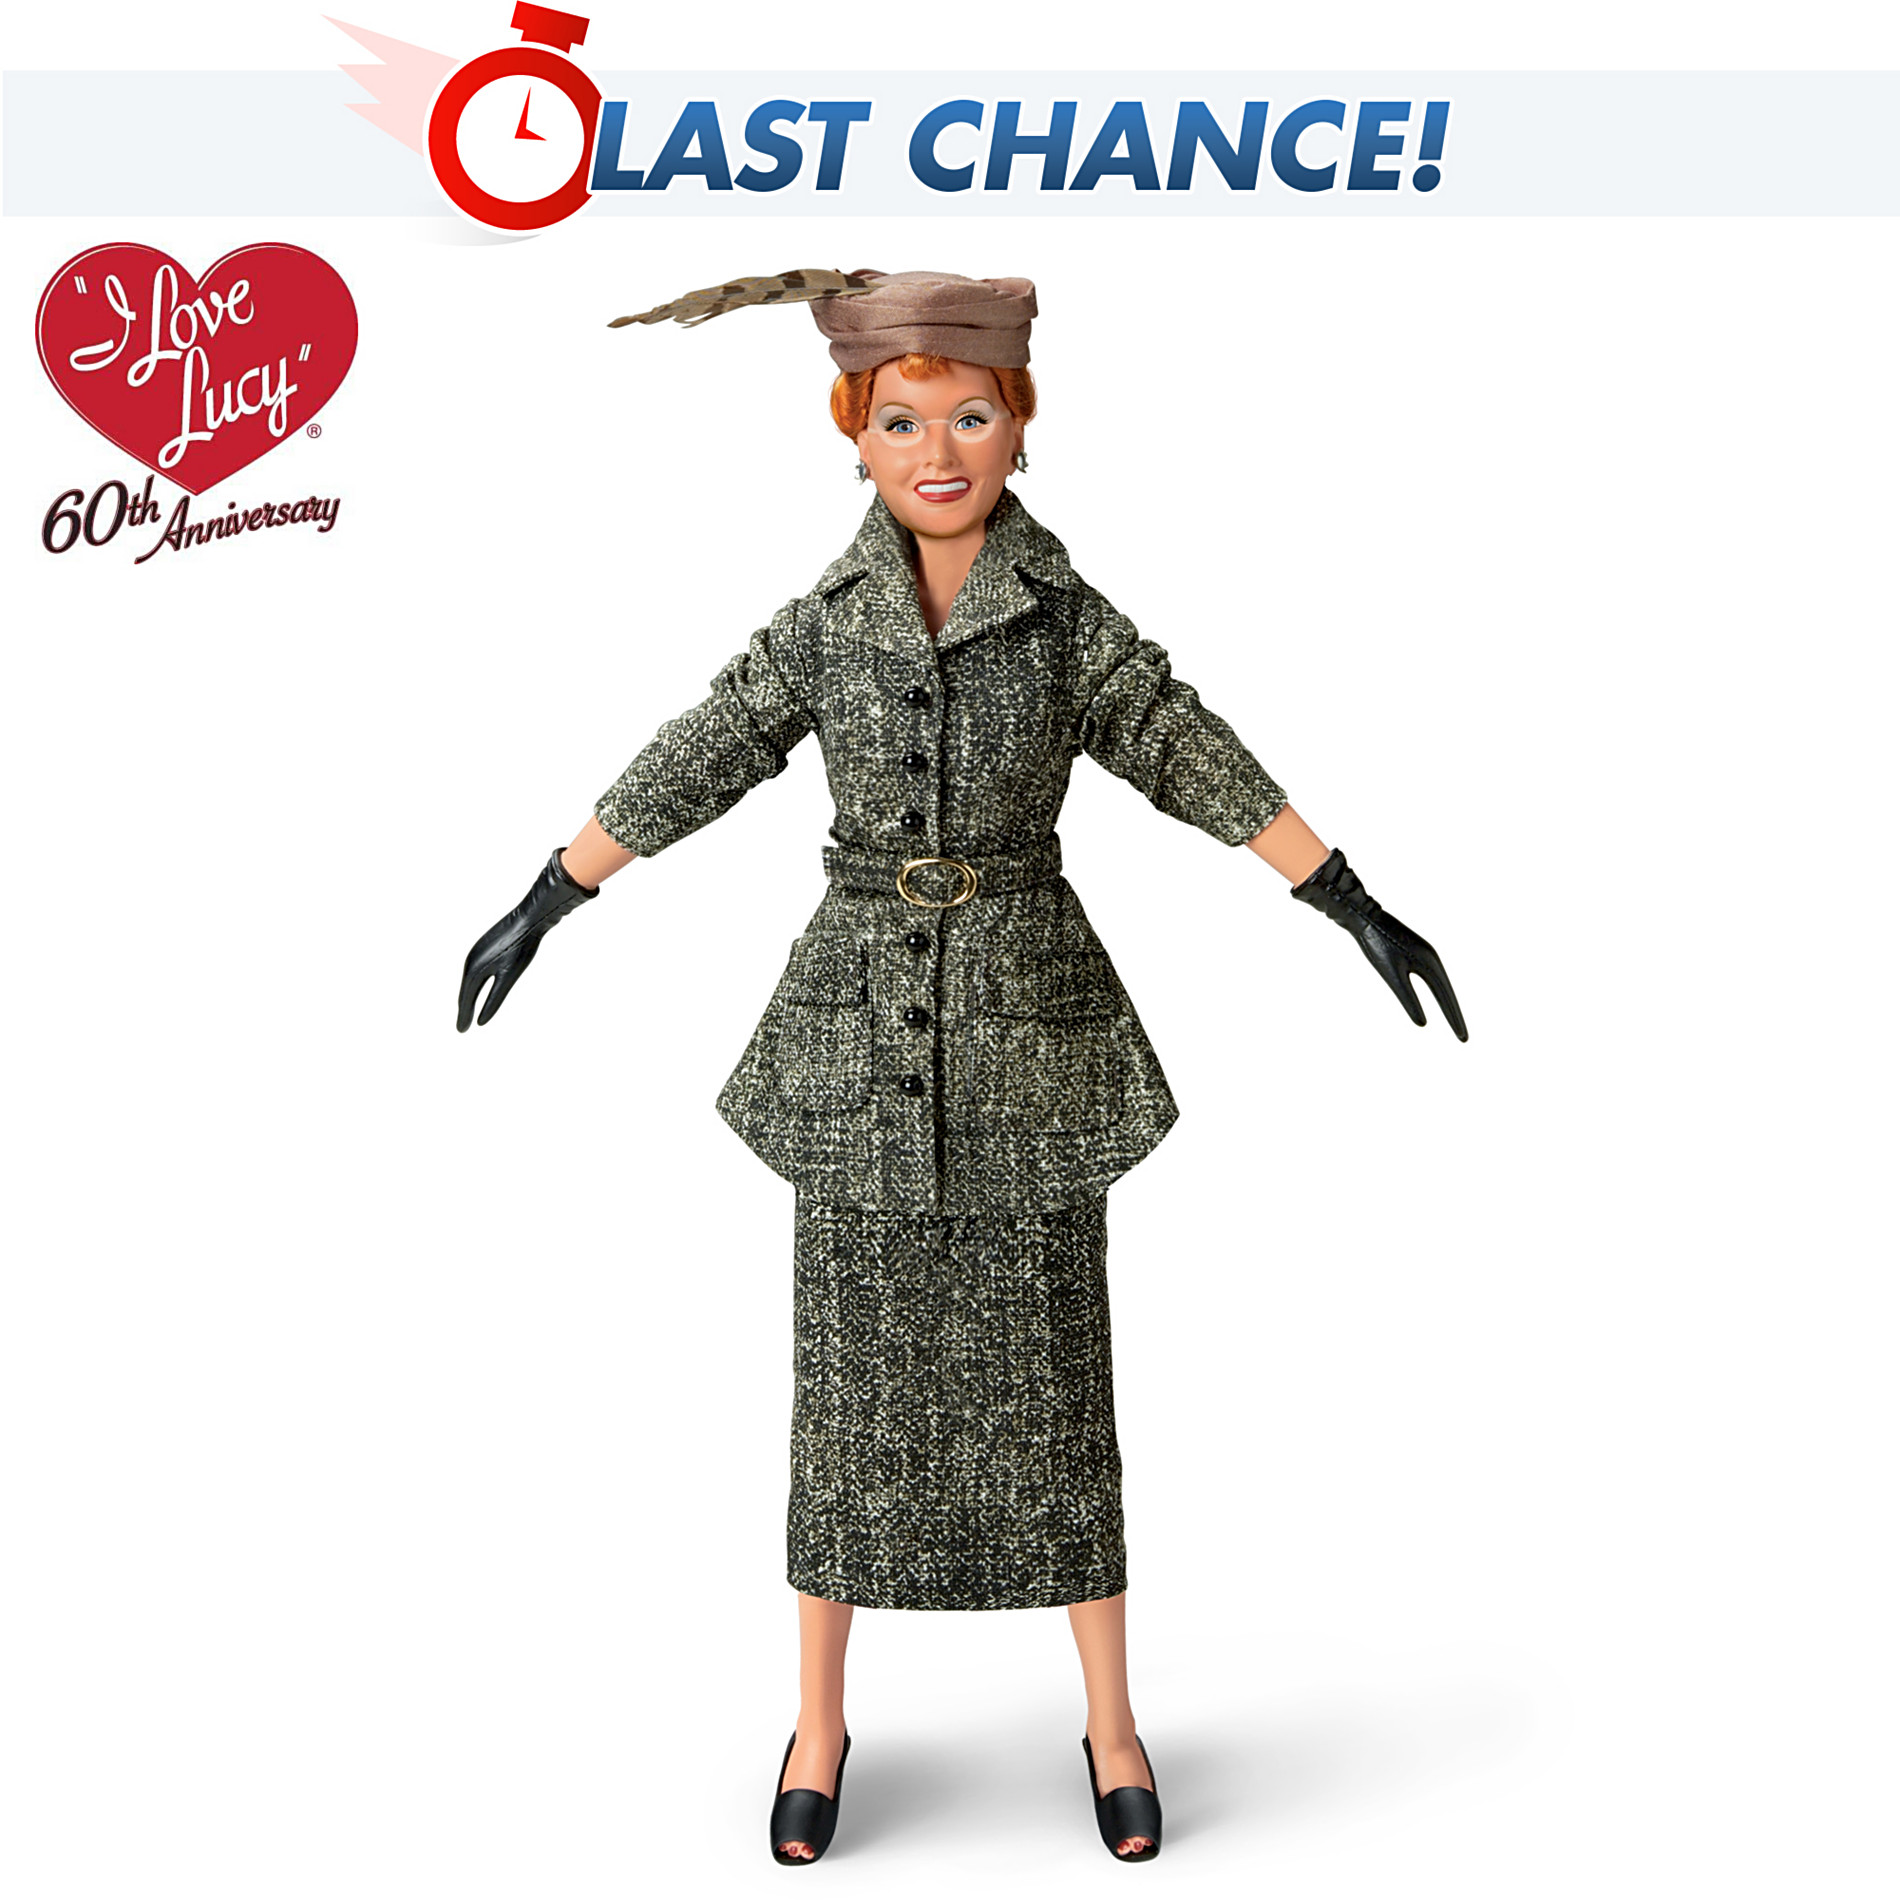 The Ashton Drake Galleries I LOVE LUCY The Fashion Show Doll at Sears.com